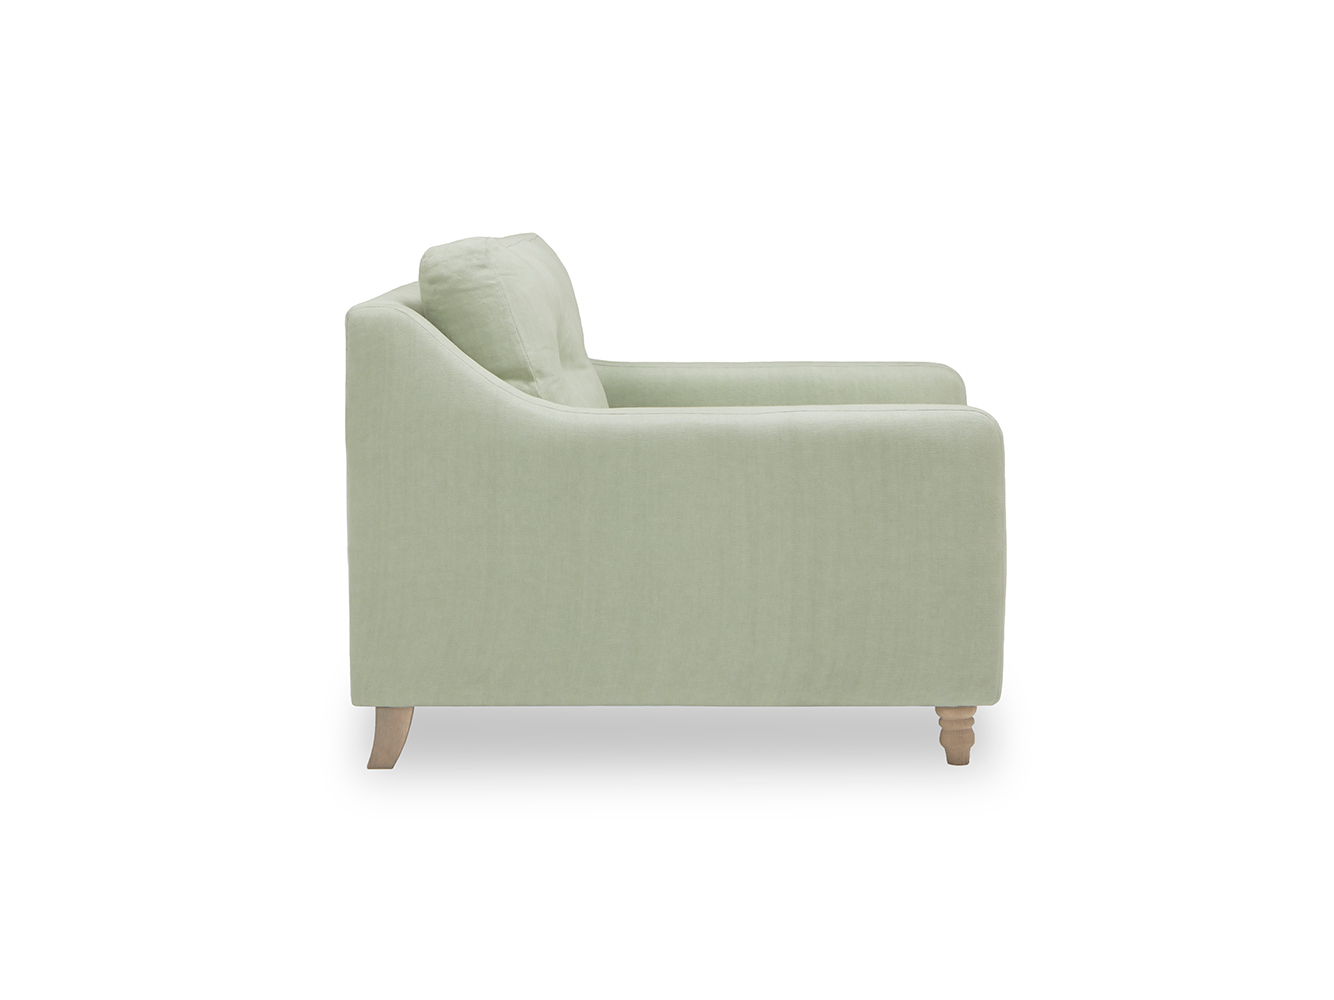 Fantastic Slim Jim Love Seat In Thatch House Fabric Alphanode Cool Chair Designs And Ideas Alphanodeonline